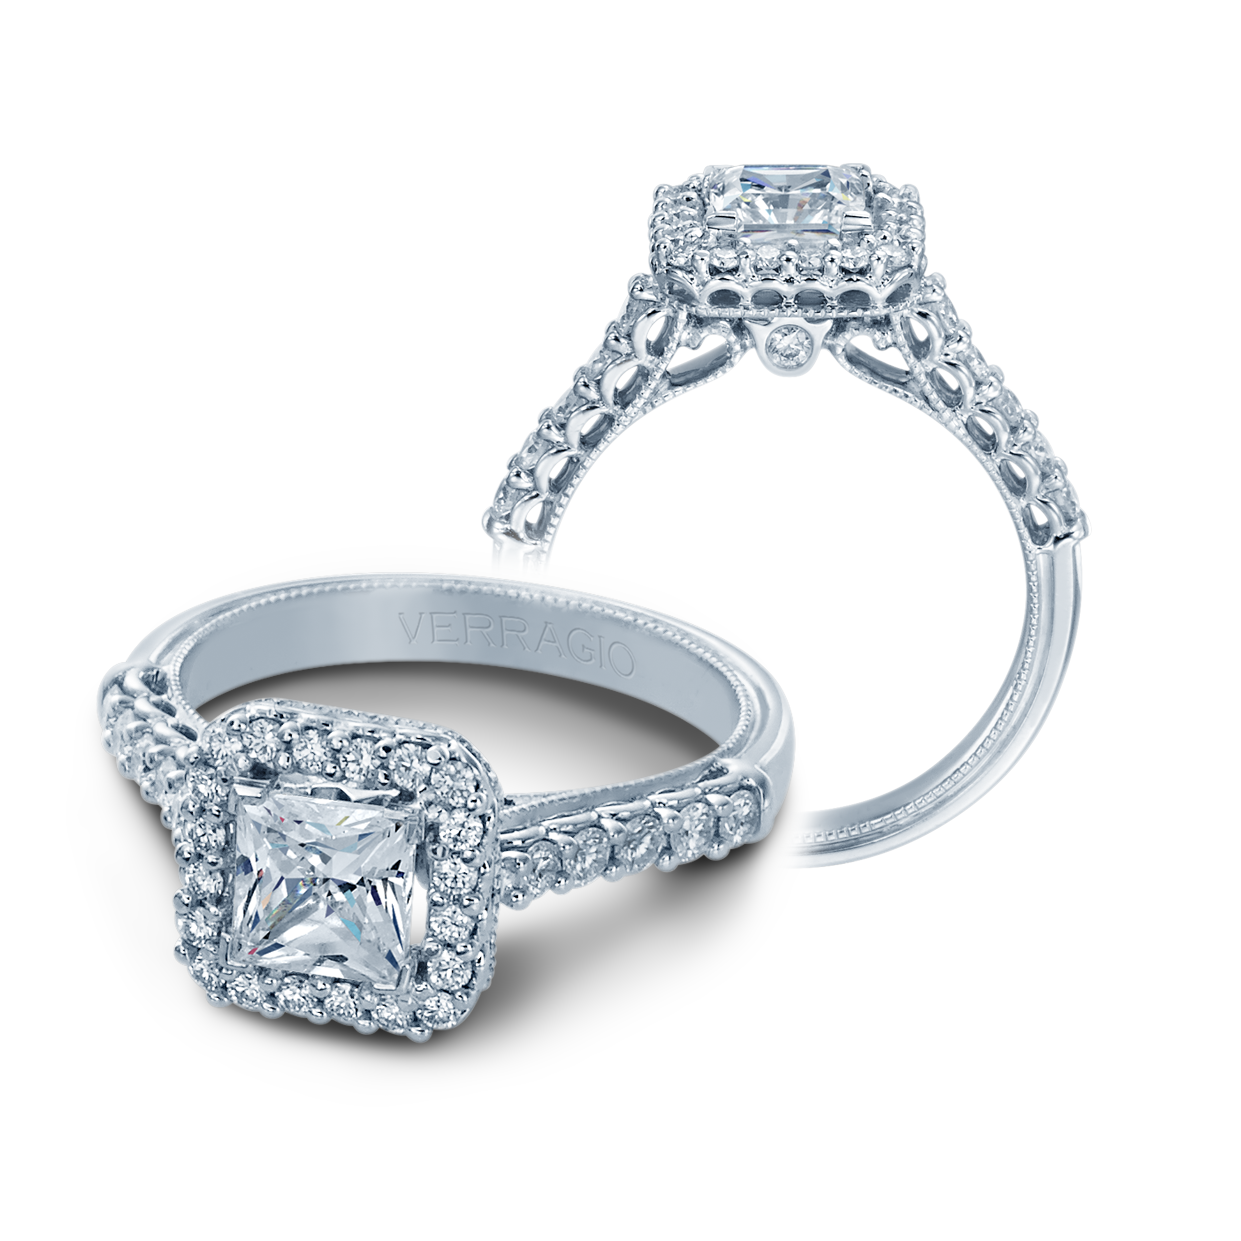 Verragio Classic-903-P5.5 Engagement Ring